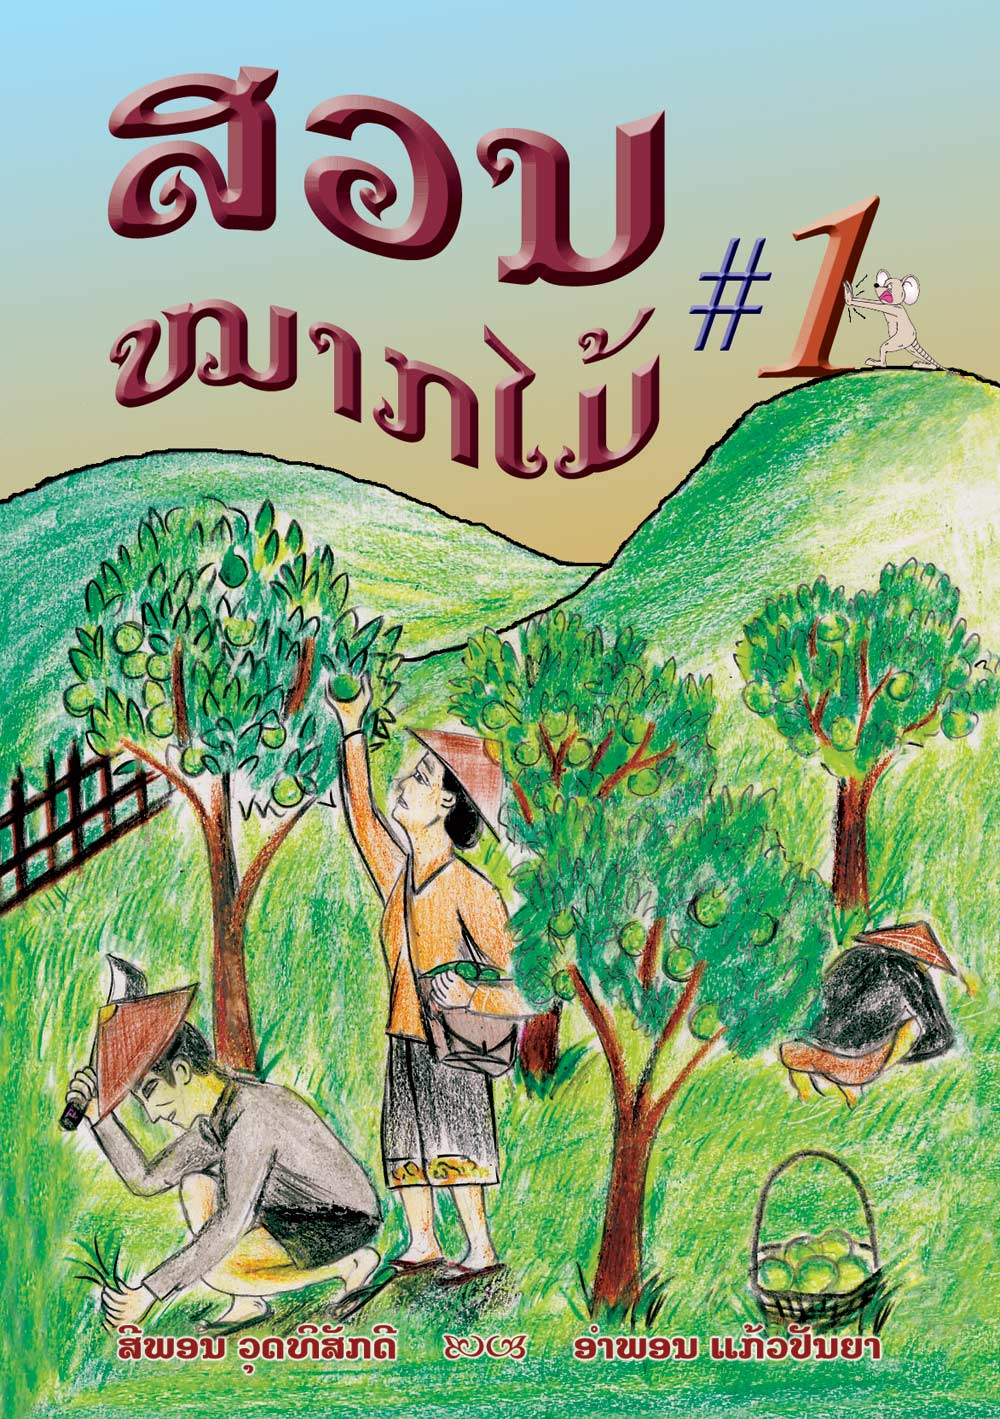 Fruit Farm #1 large book cover, published in Lao language